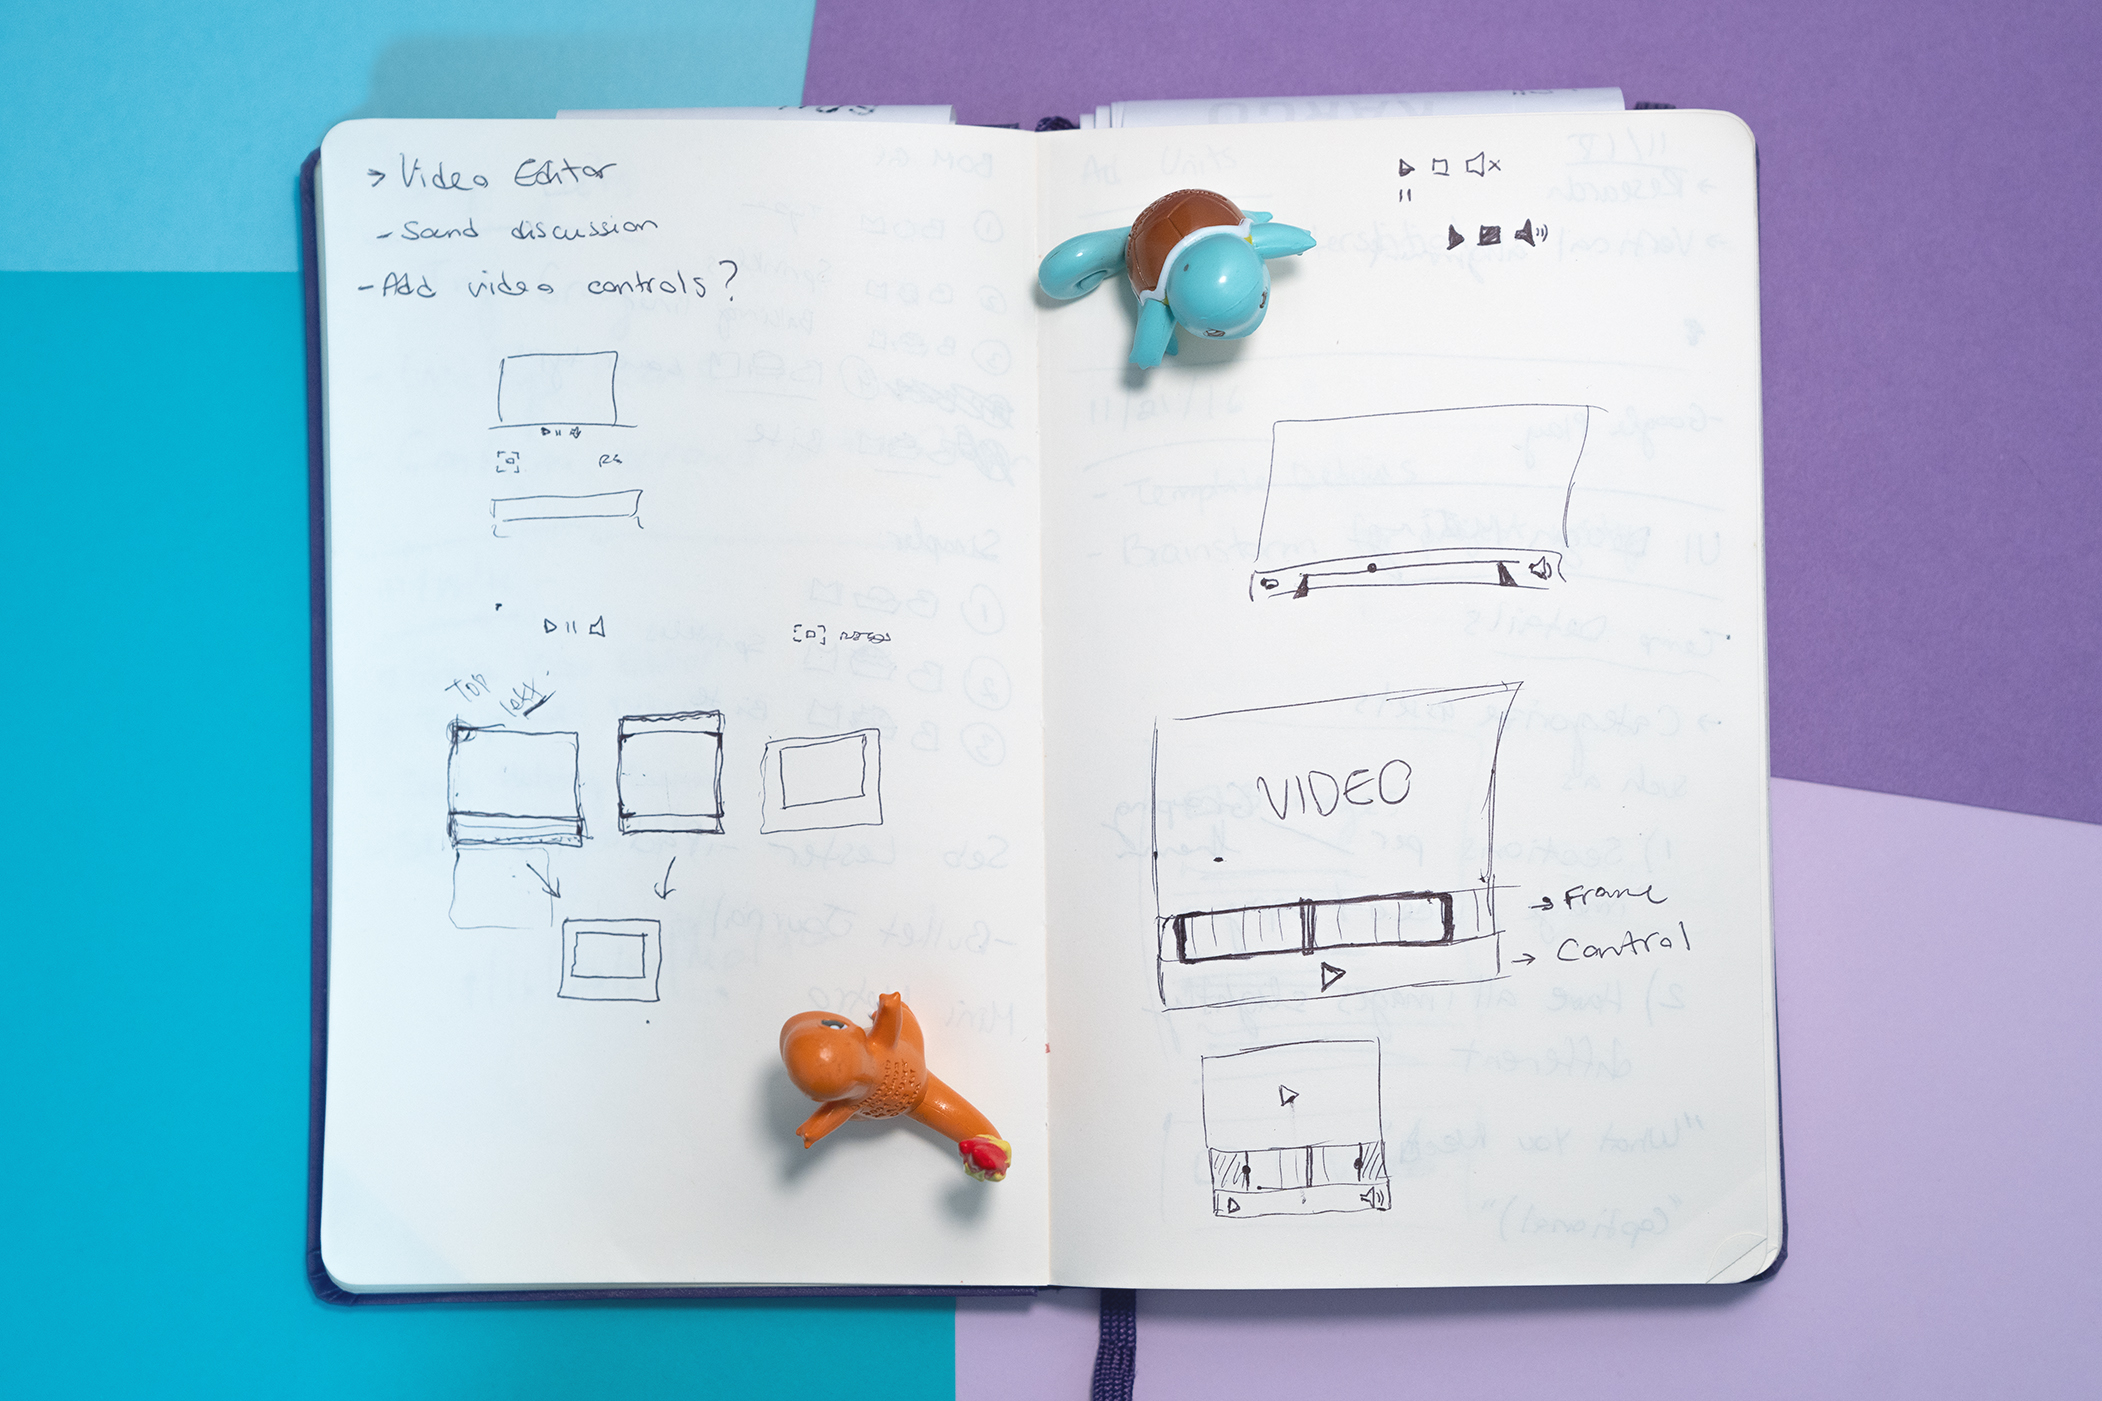 Sketches of interface ideas